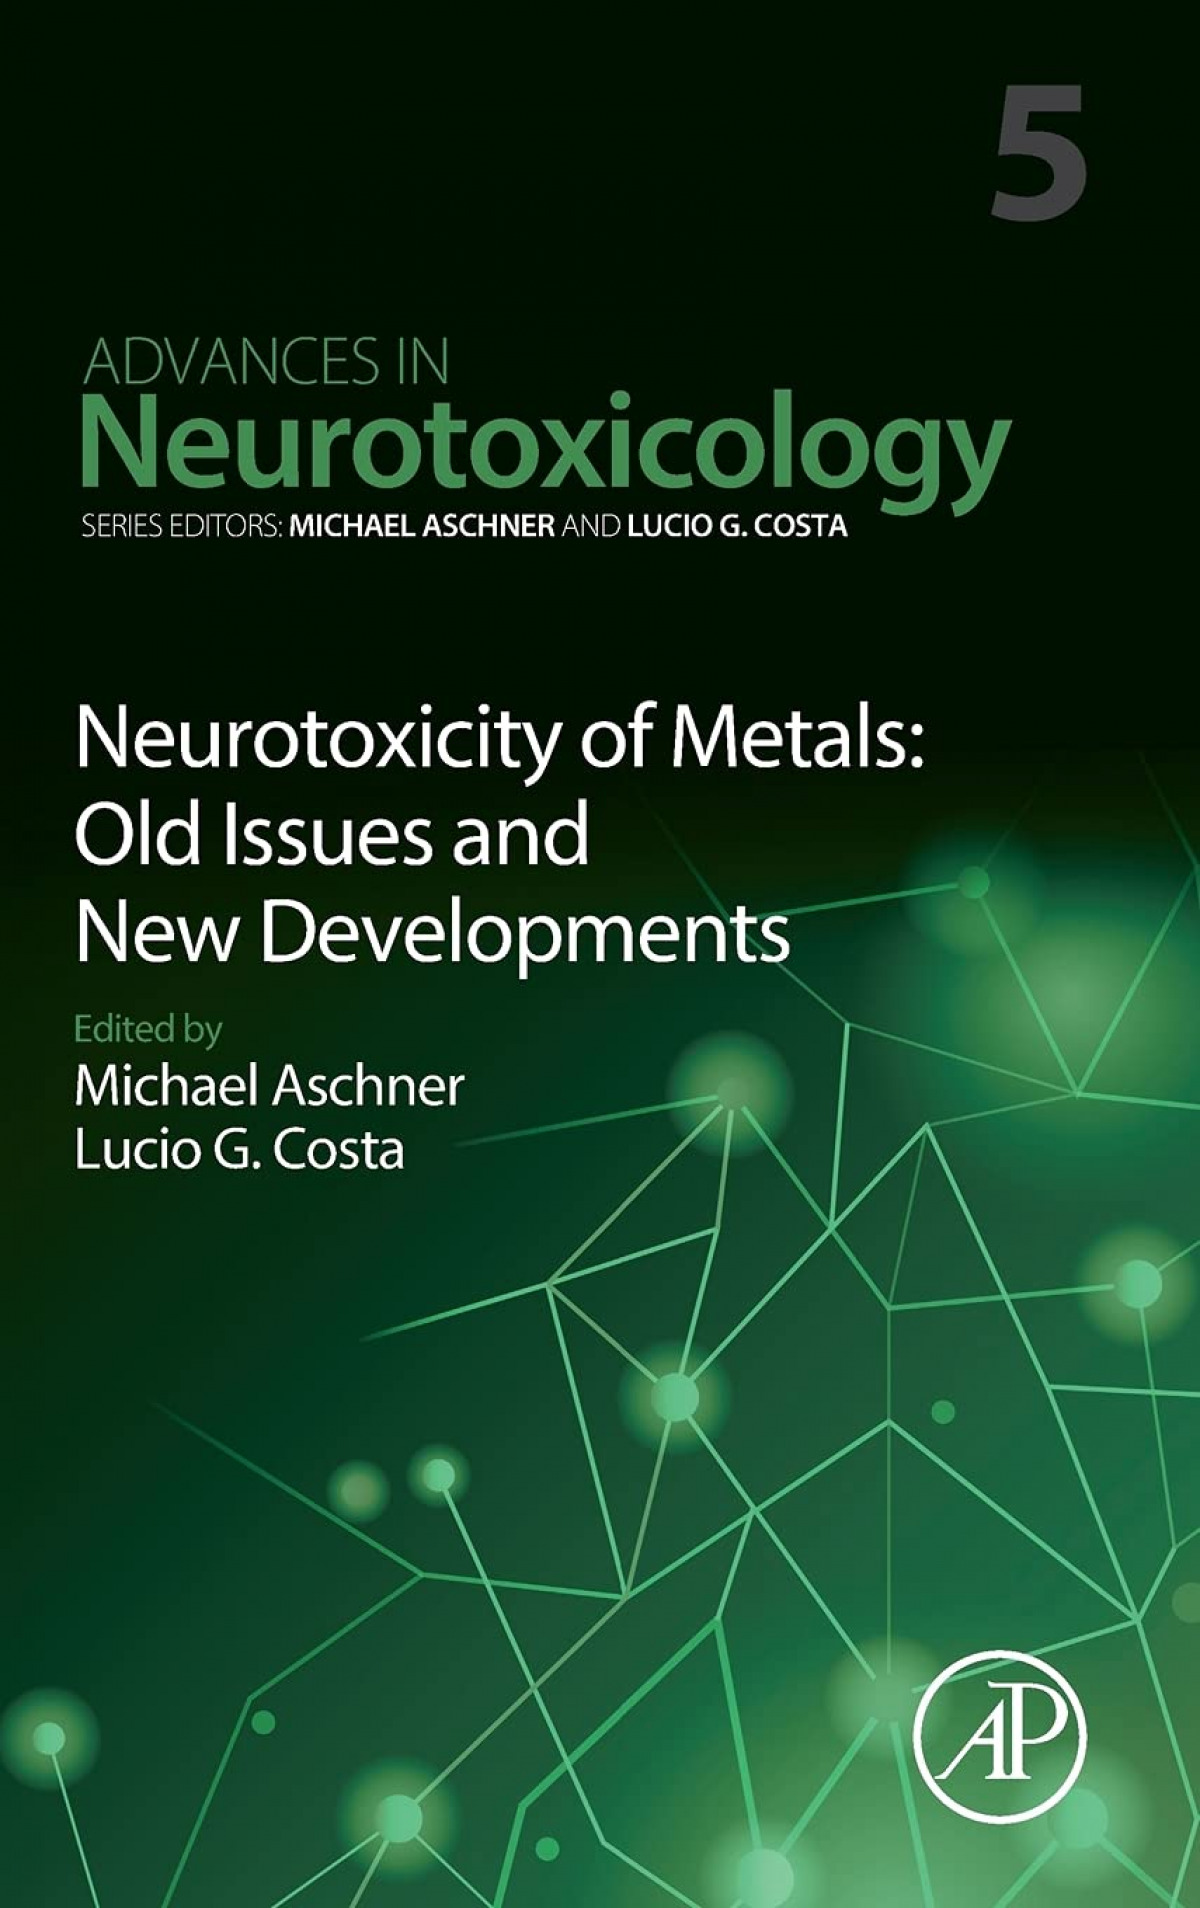 NEUROTOXICITY OF METALS:OLD ISSUES NEW DEVELOPMENTS VOL.5